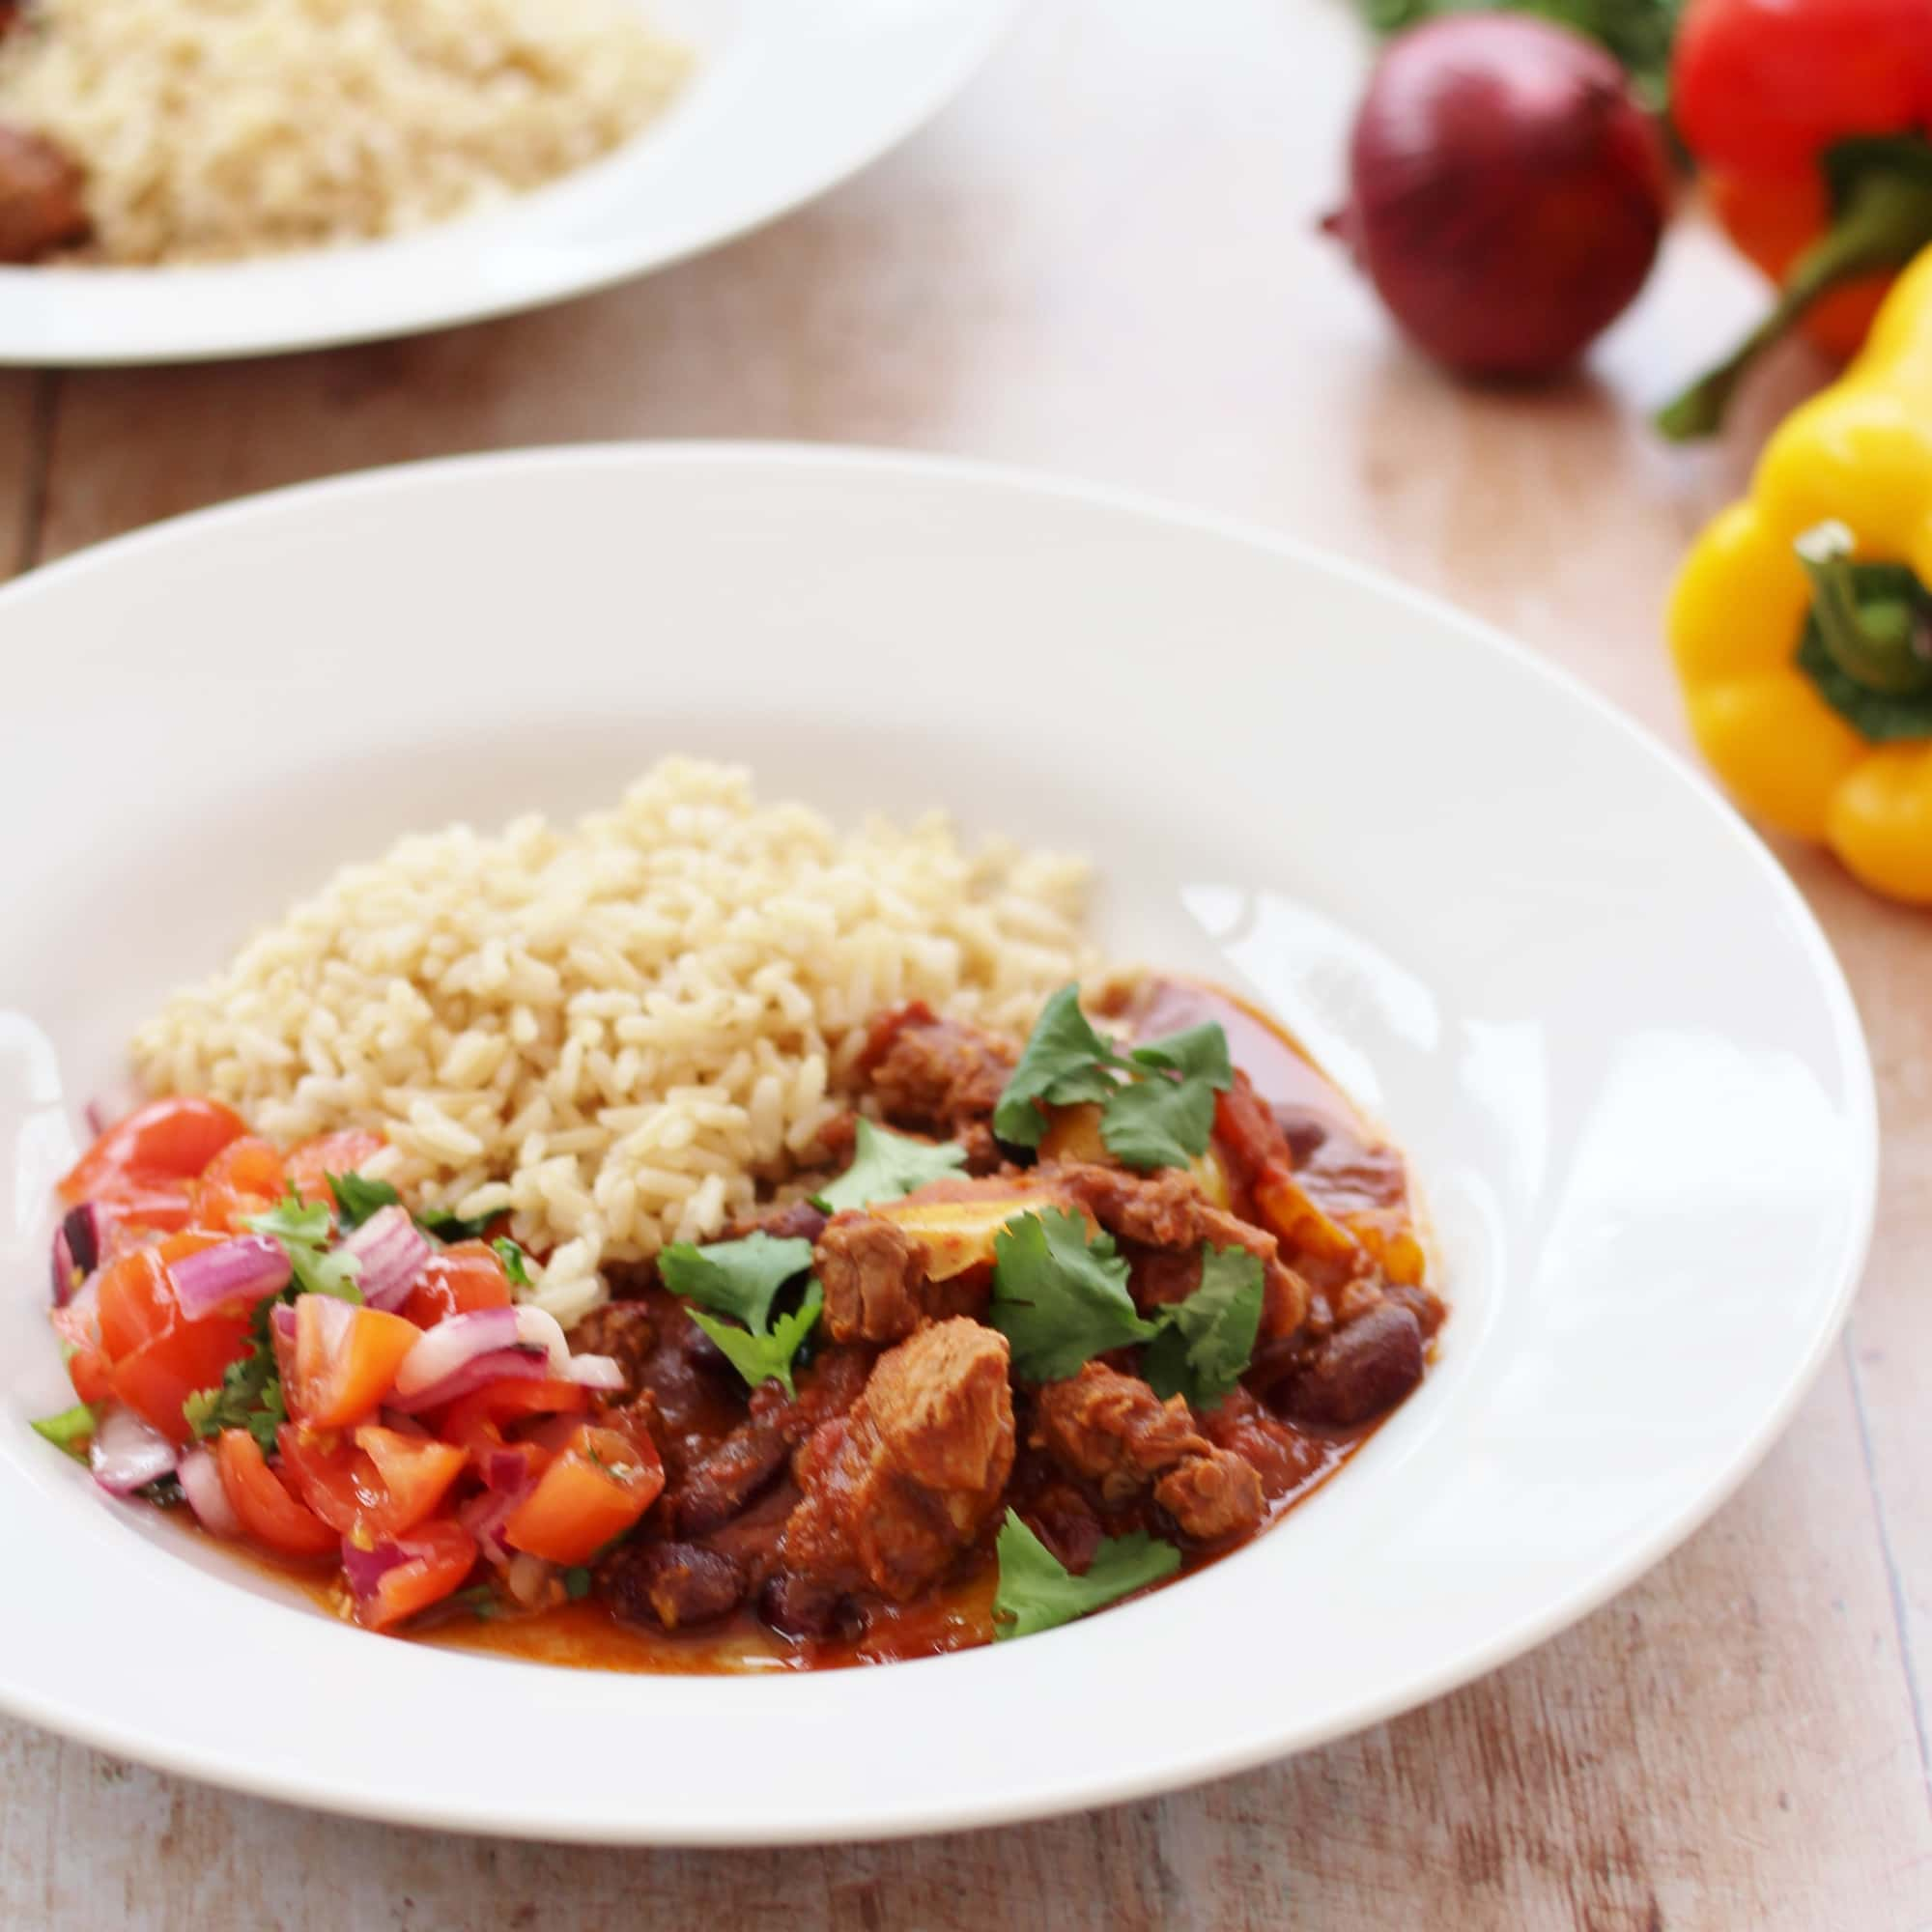 Lamb Stew Recipe Spicy Mexican Lamb Stew Easy Peasy Salsa Easy Peasy Foodie